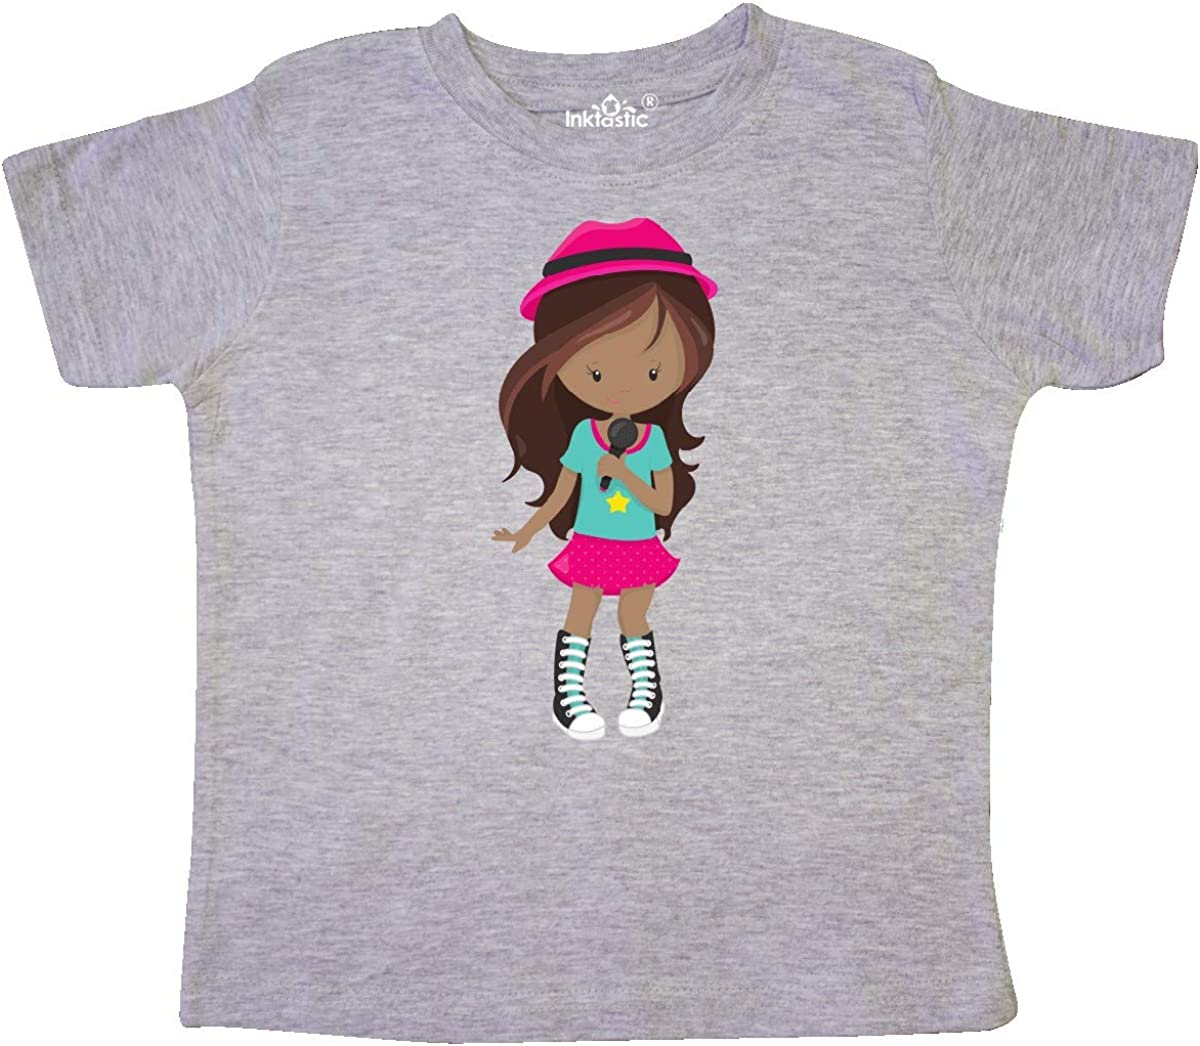 Rock Girl Band Singer Toddler T-Shirt inktastic African American Girl